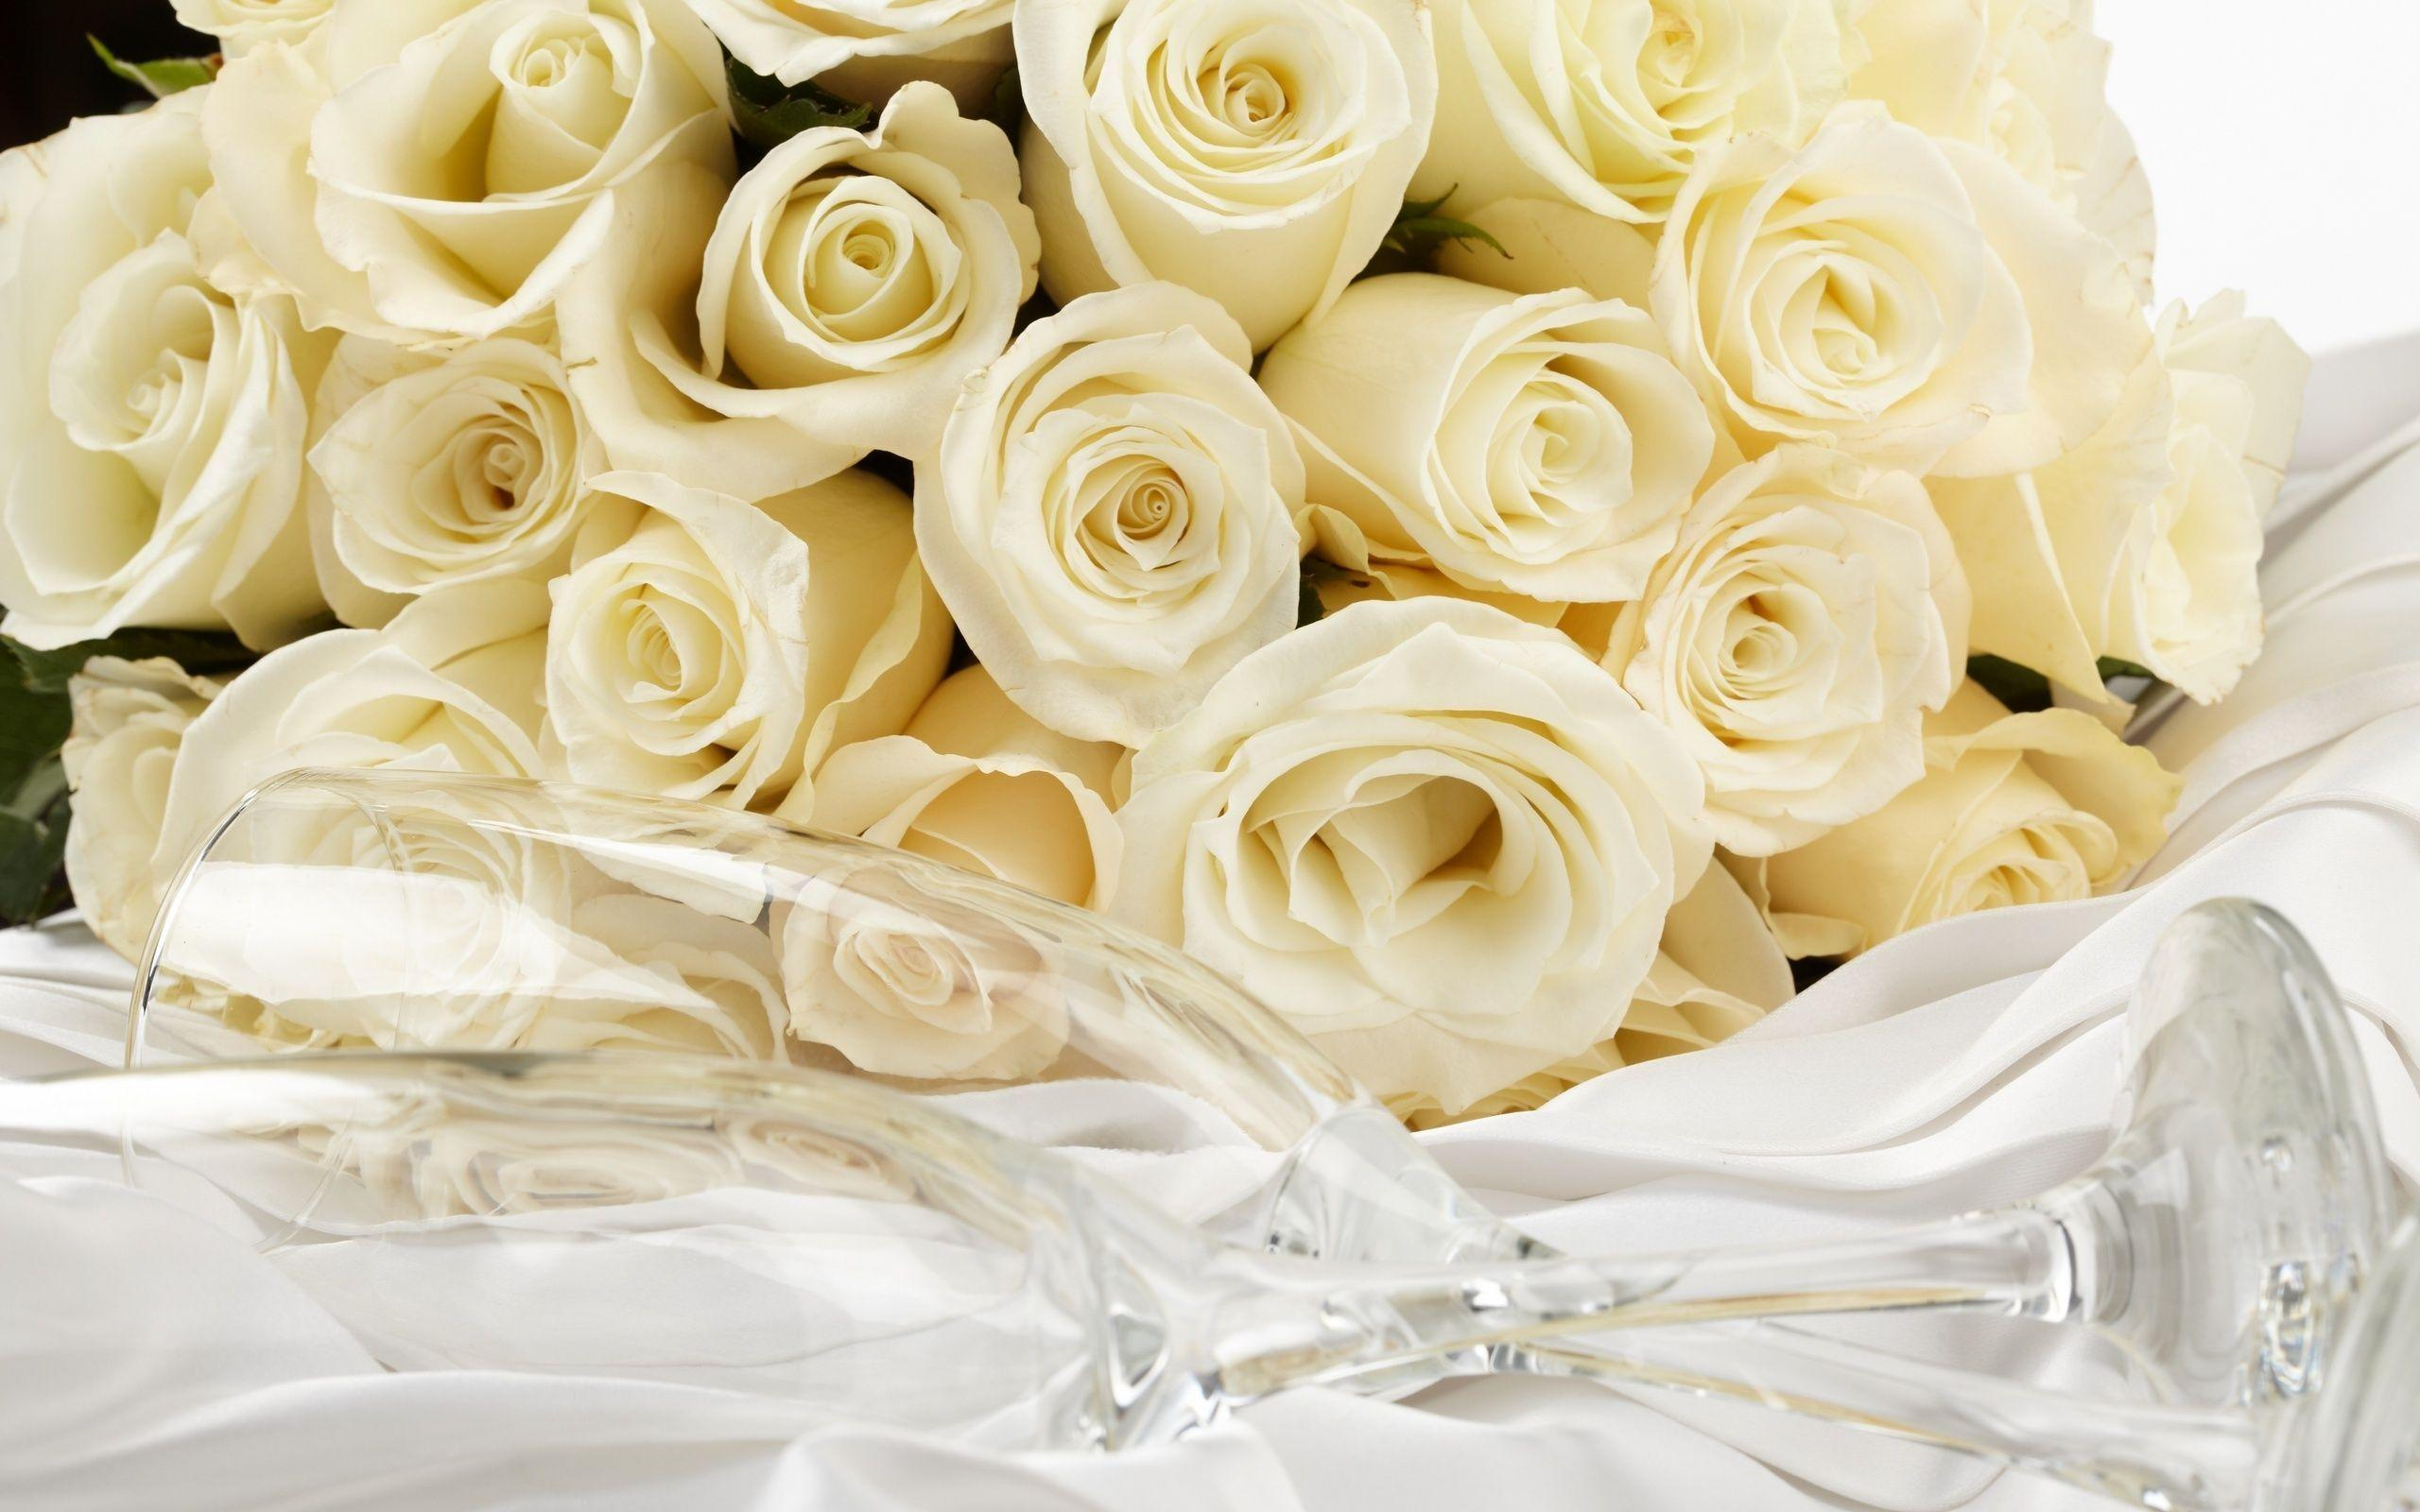 White Roses Backgrounds Tumblr Backgrounds 1 HD Wallpapers